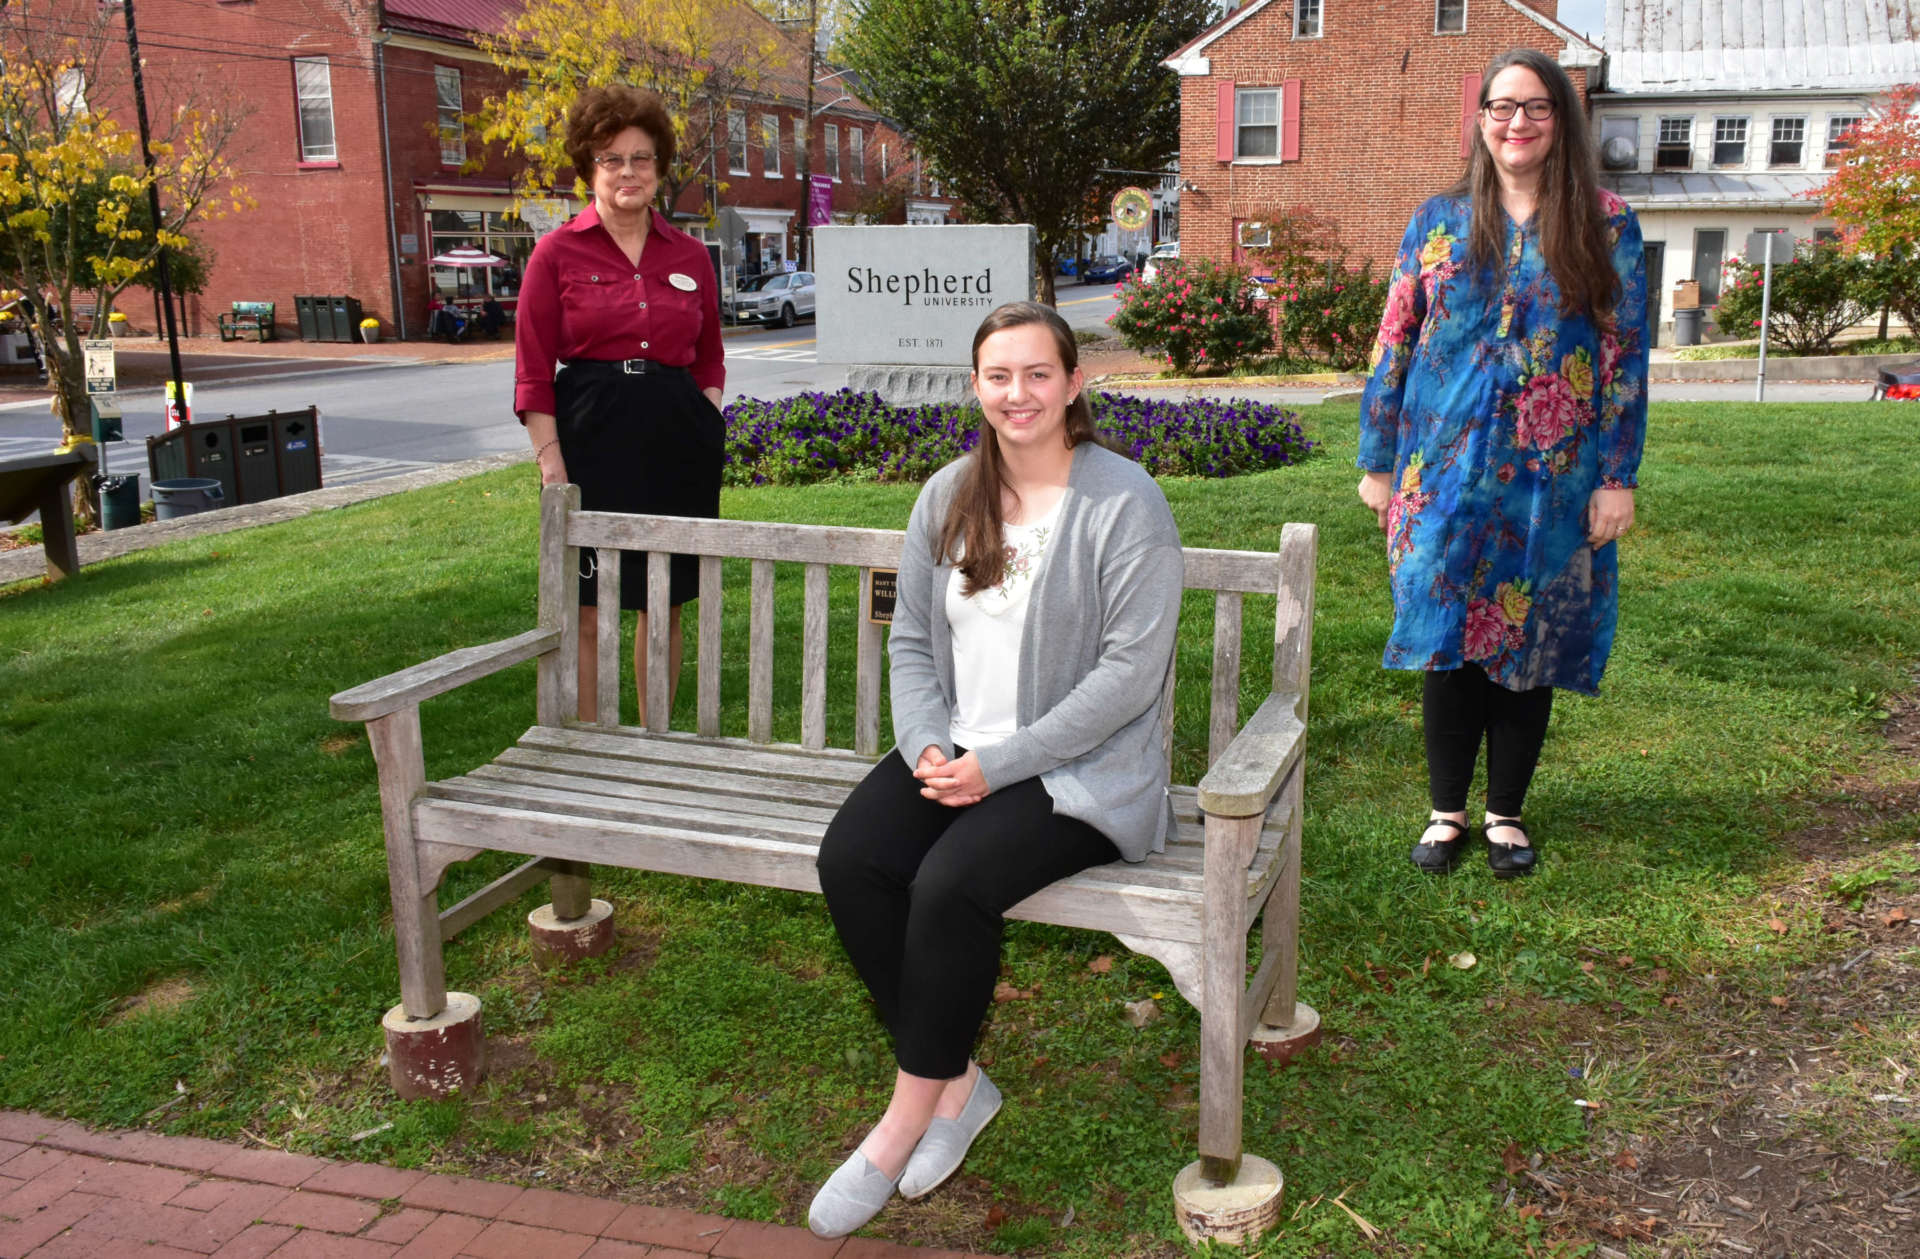 Pictured are (seated) Leanna Basye, a secondary education major from Baker, and (standing, l. to r.) Dr. Sylvia Bailey Shurbutt, director, Shepherd University Center for Appalachian Studies and Communities, and Rachael Meads, student activities and leadership/ Appalachian studies instructor.